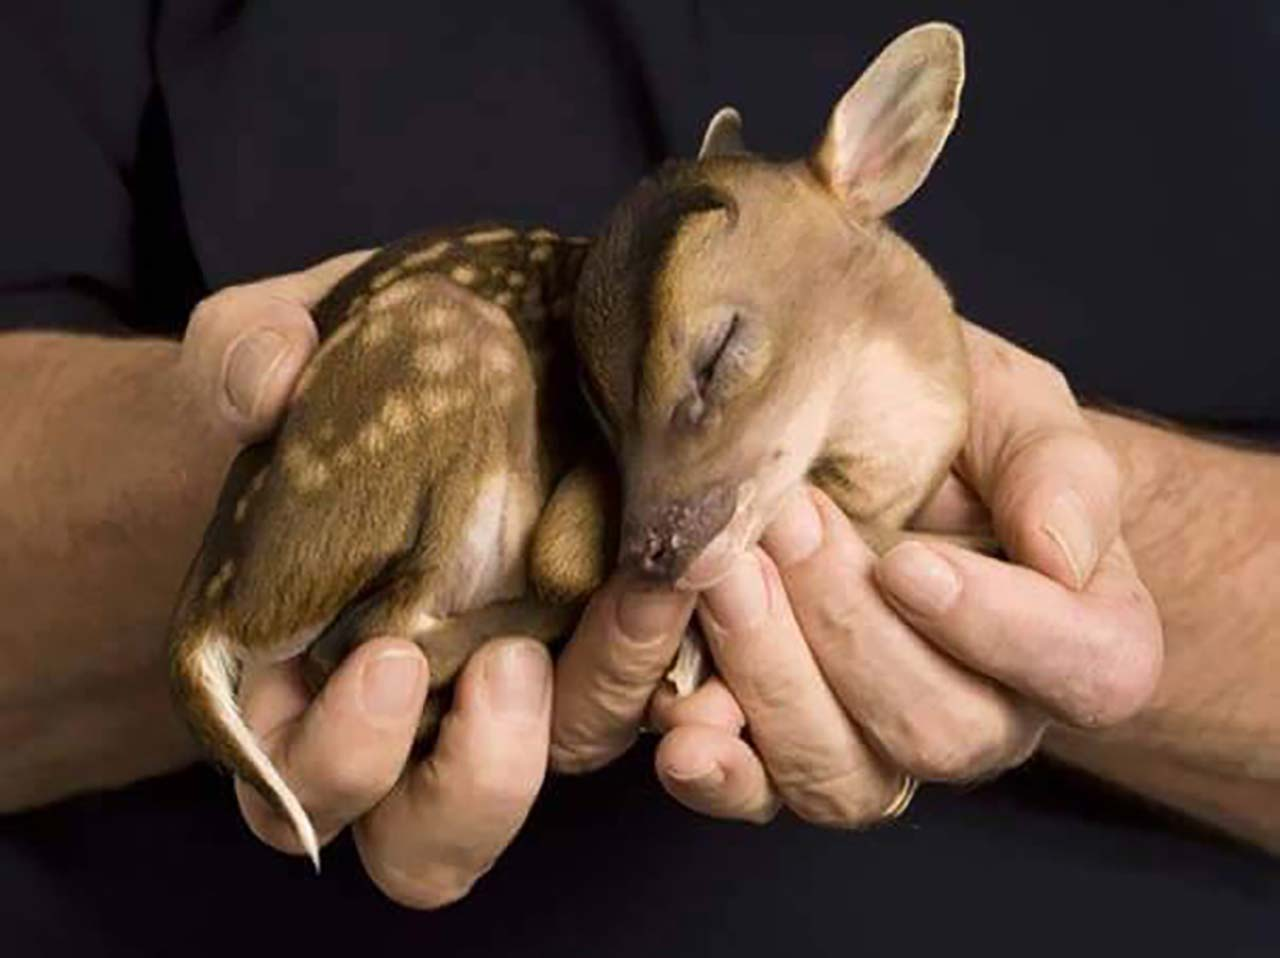 27 Adorable & Tiny Animals That Are Too Cute To Handle #10: Deer